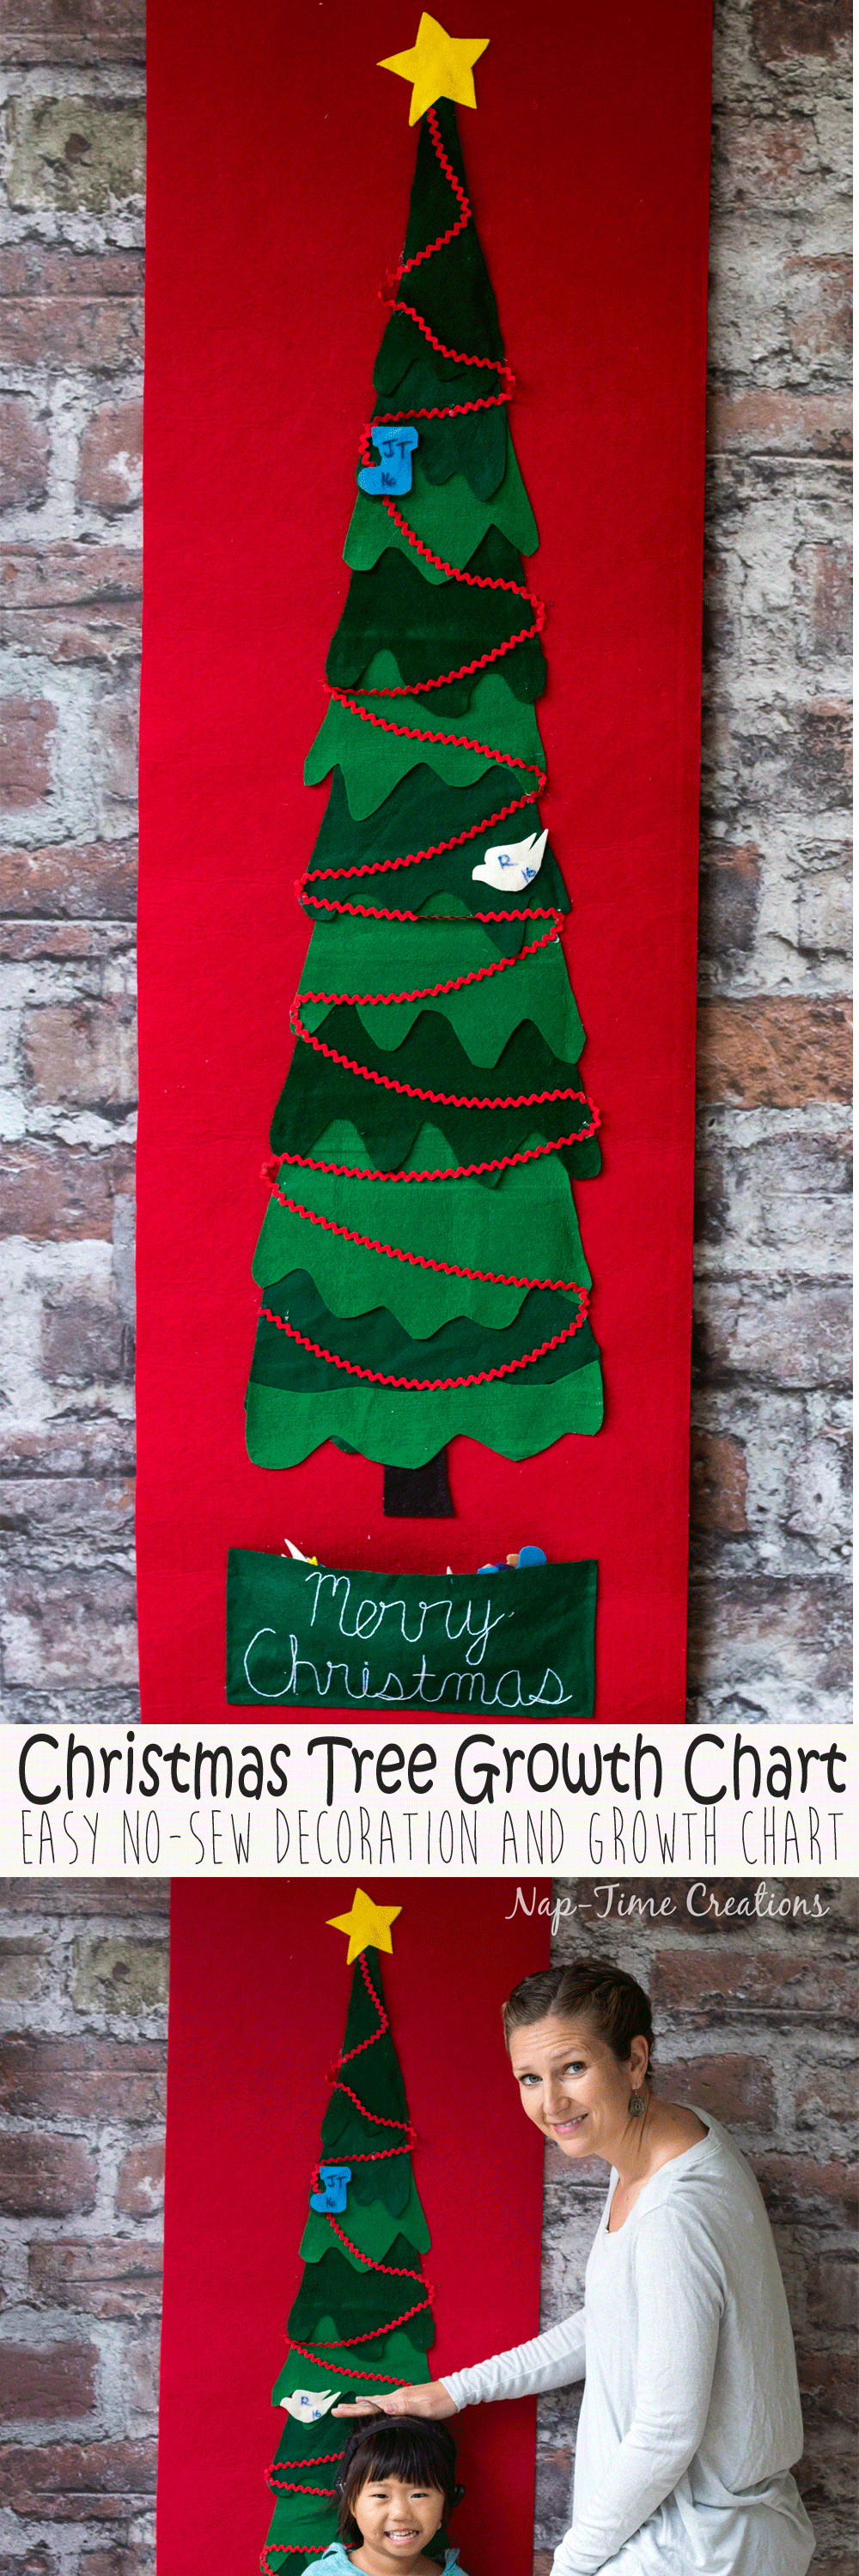 Felt Christmas Tree Growth Chart - a no sew project - Life Sew Savory